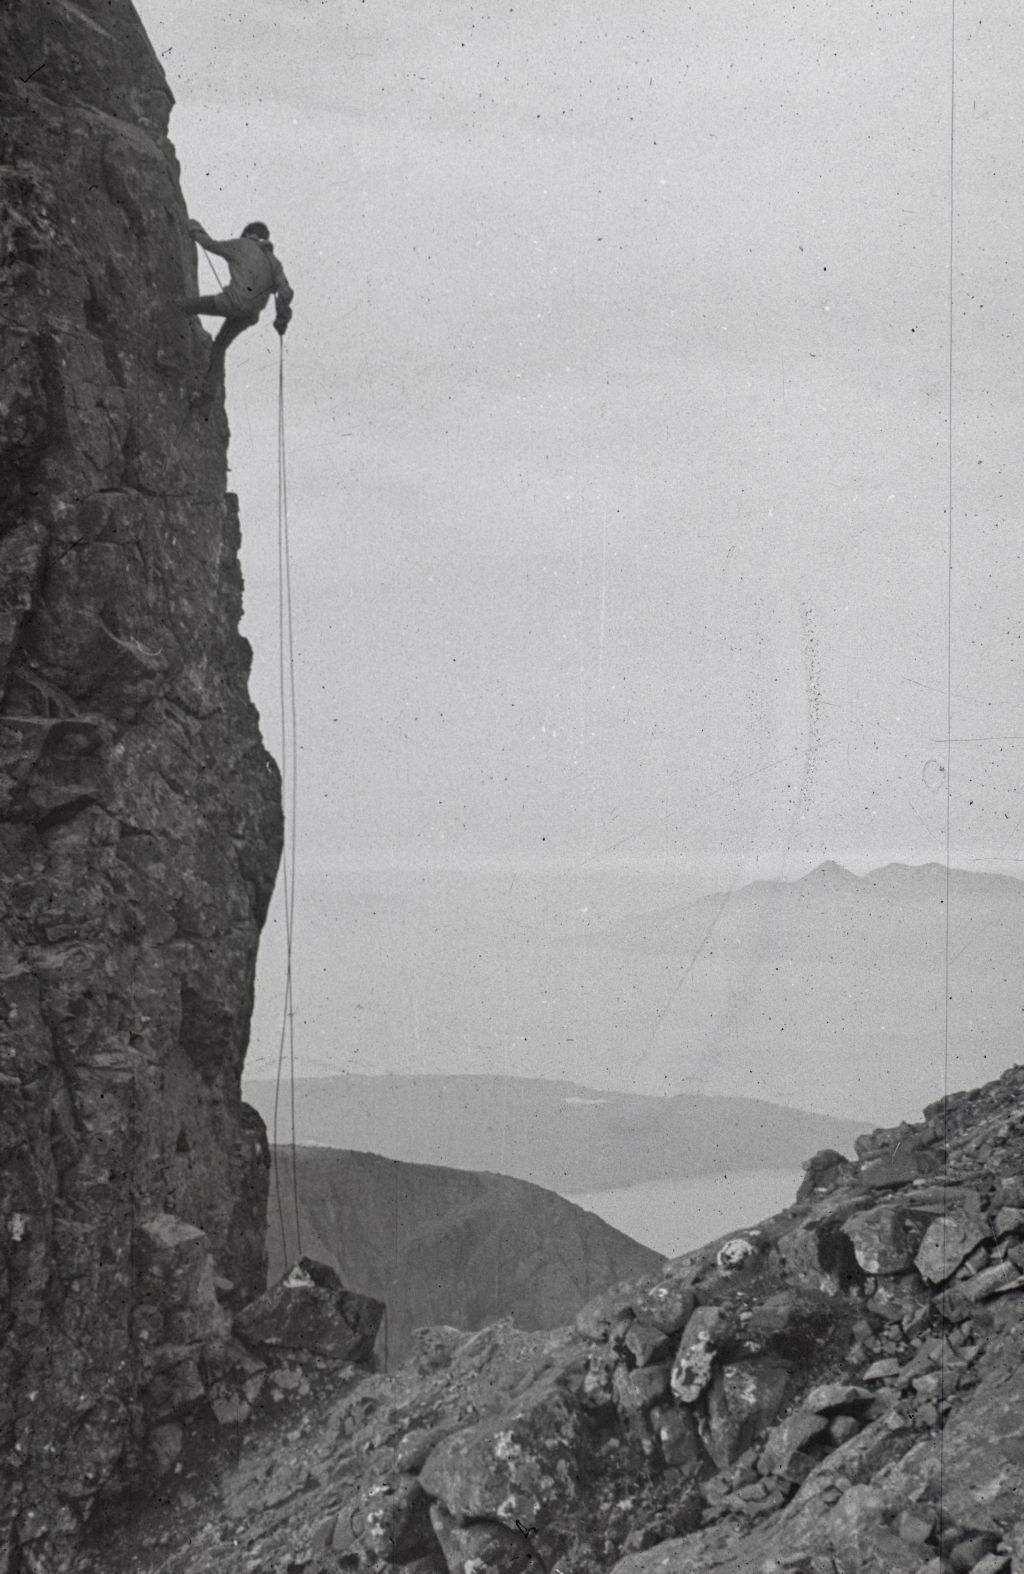 Tom Izatt abseiling off the In Pin (Inaccessible Pinnacle, Sgurr Dearg) on the Braehead Cuillin Ridge Traverse.